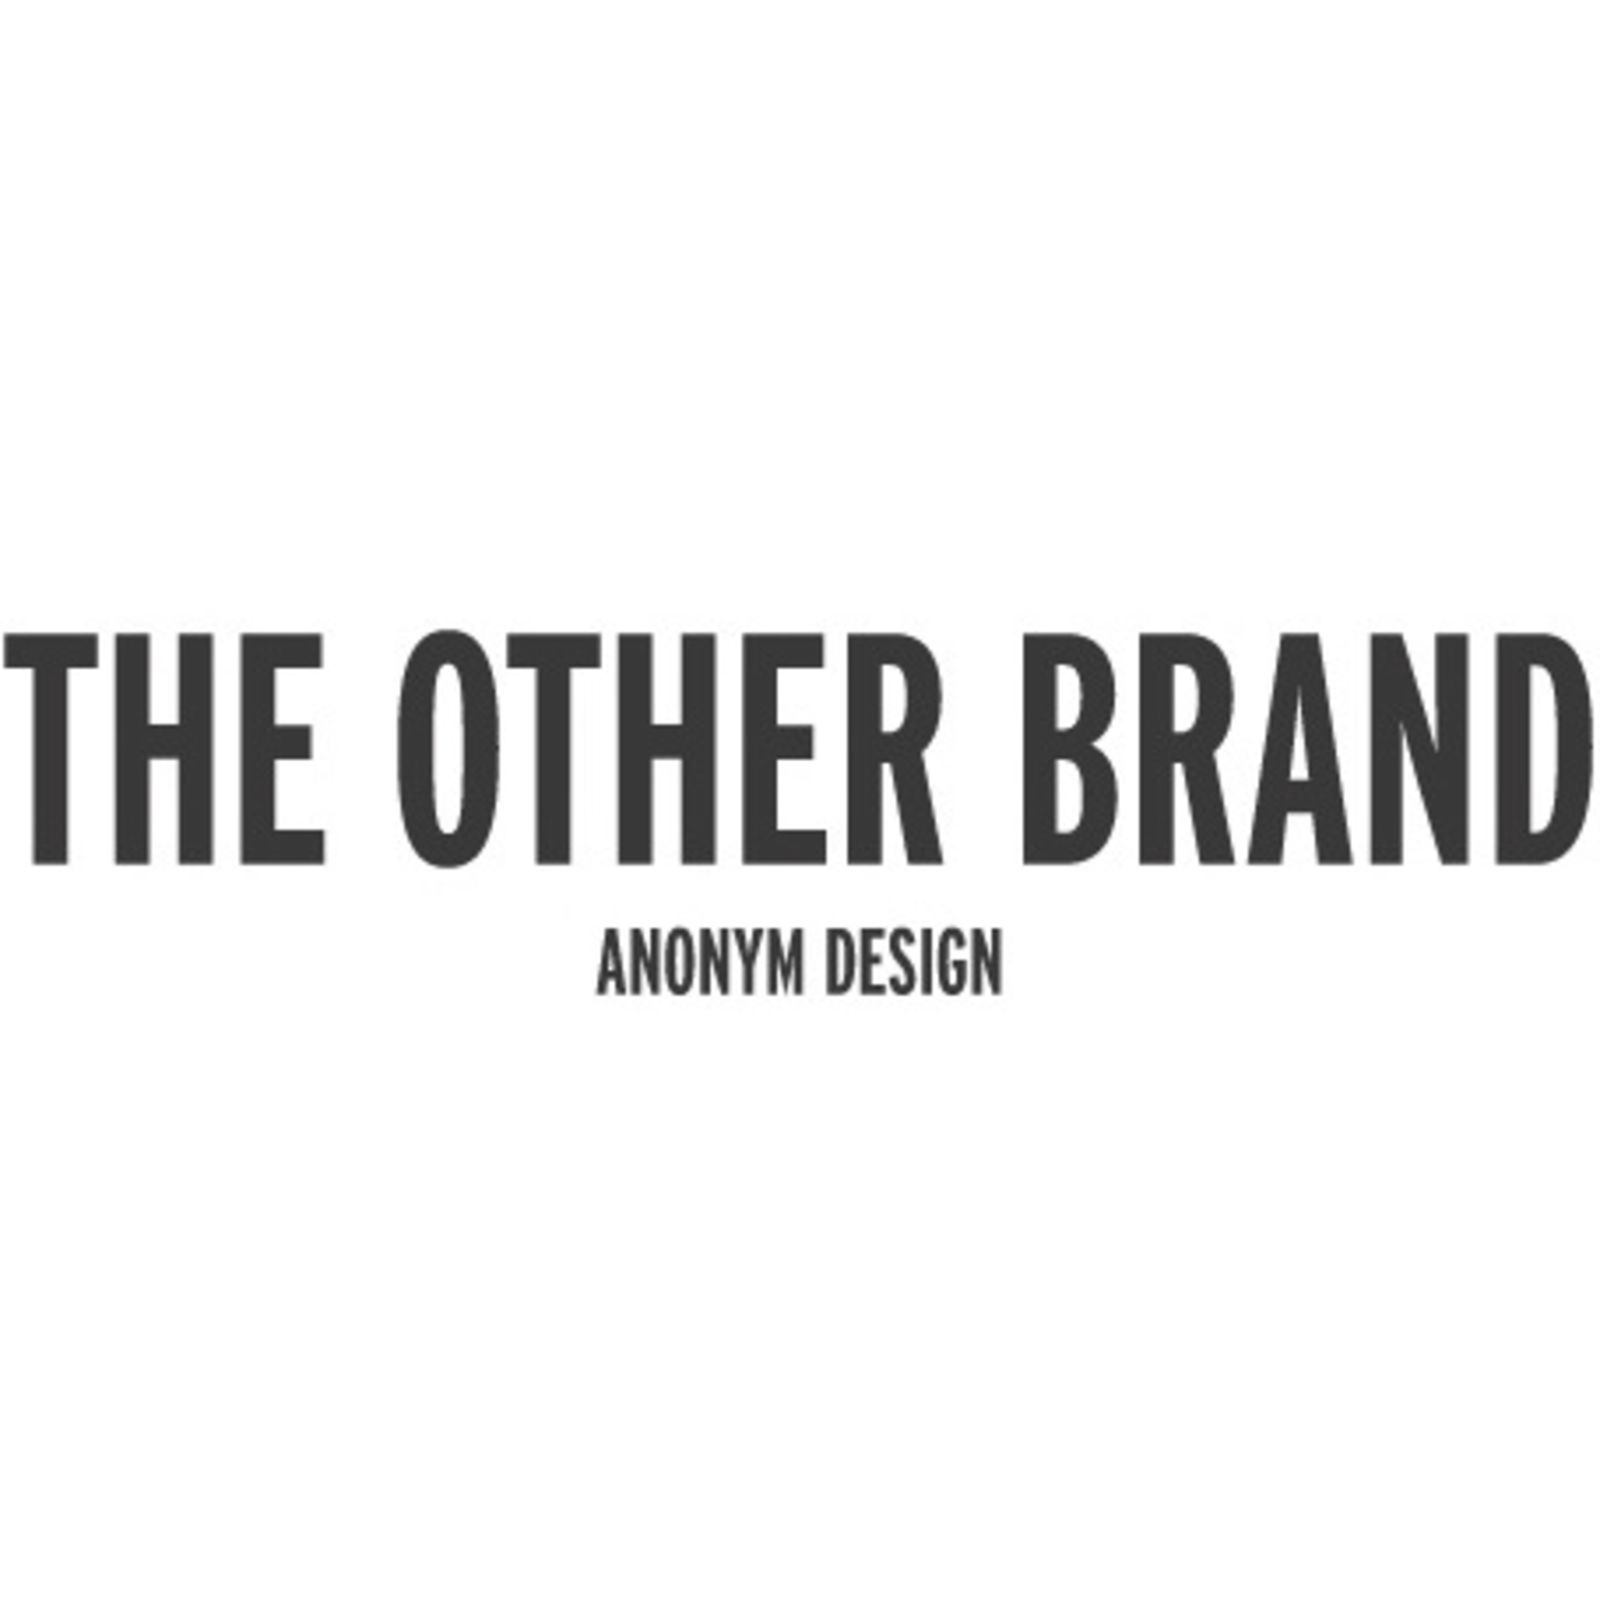 THE OTHER BRAND